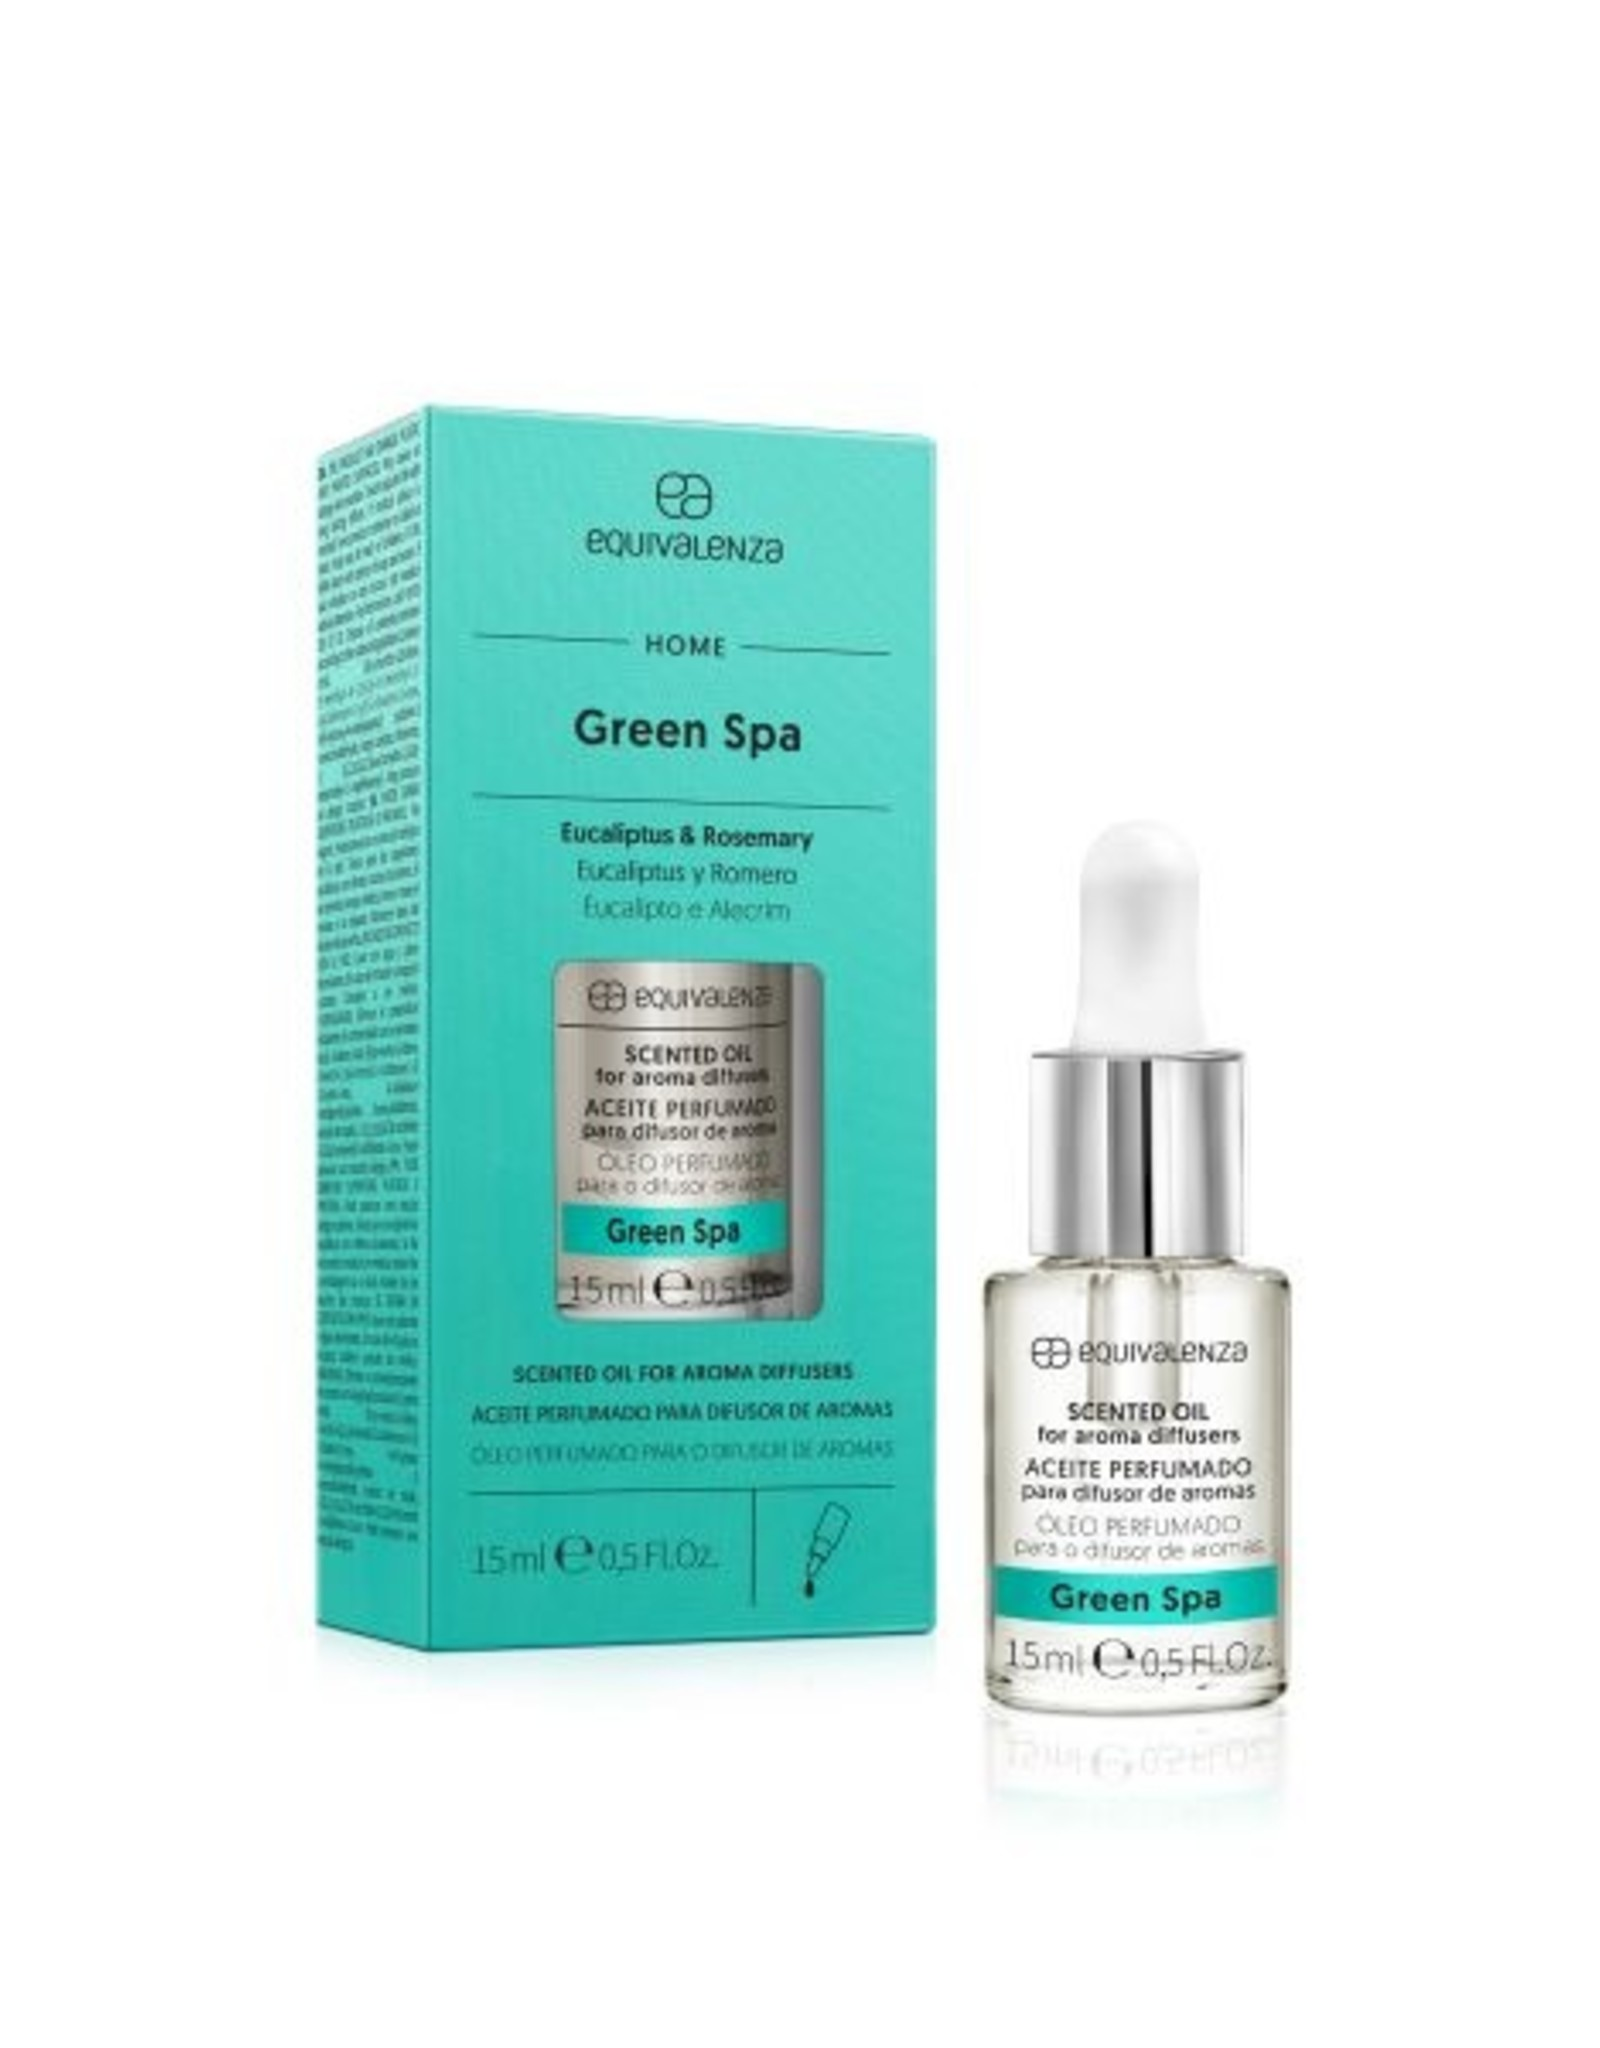 Equivalenza Water-Soluble Scented Oil – Green Spa (eucalyptus and rosemary)